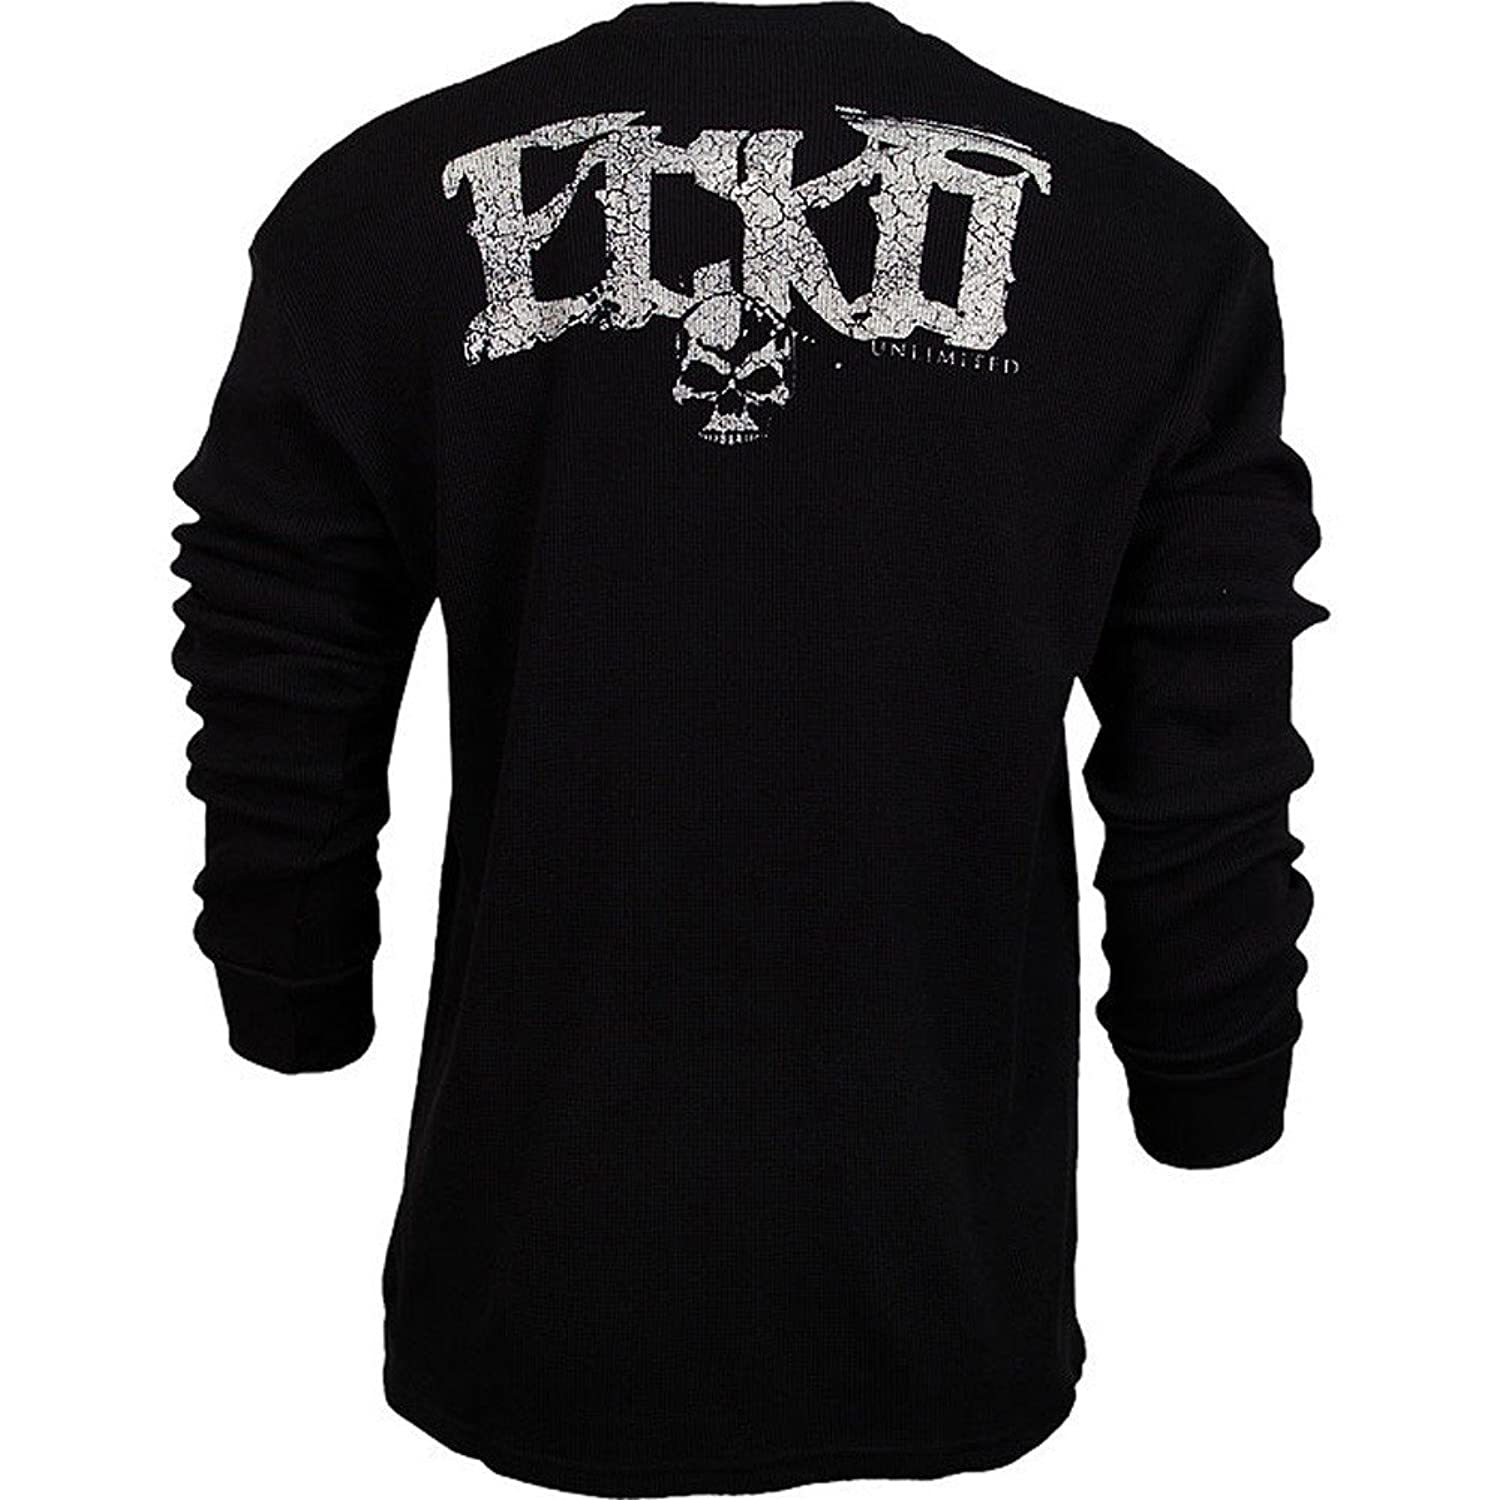 Ecko Unltd. Back Up Men's MMA Long Sleeve Thermal Shirt